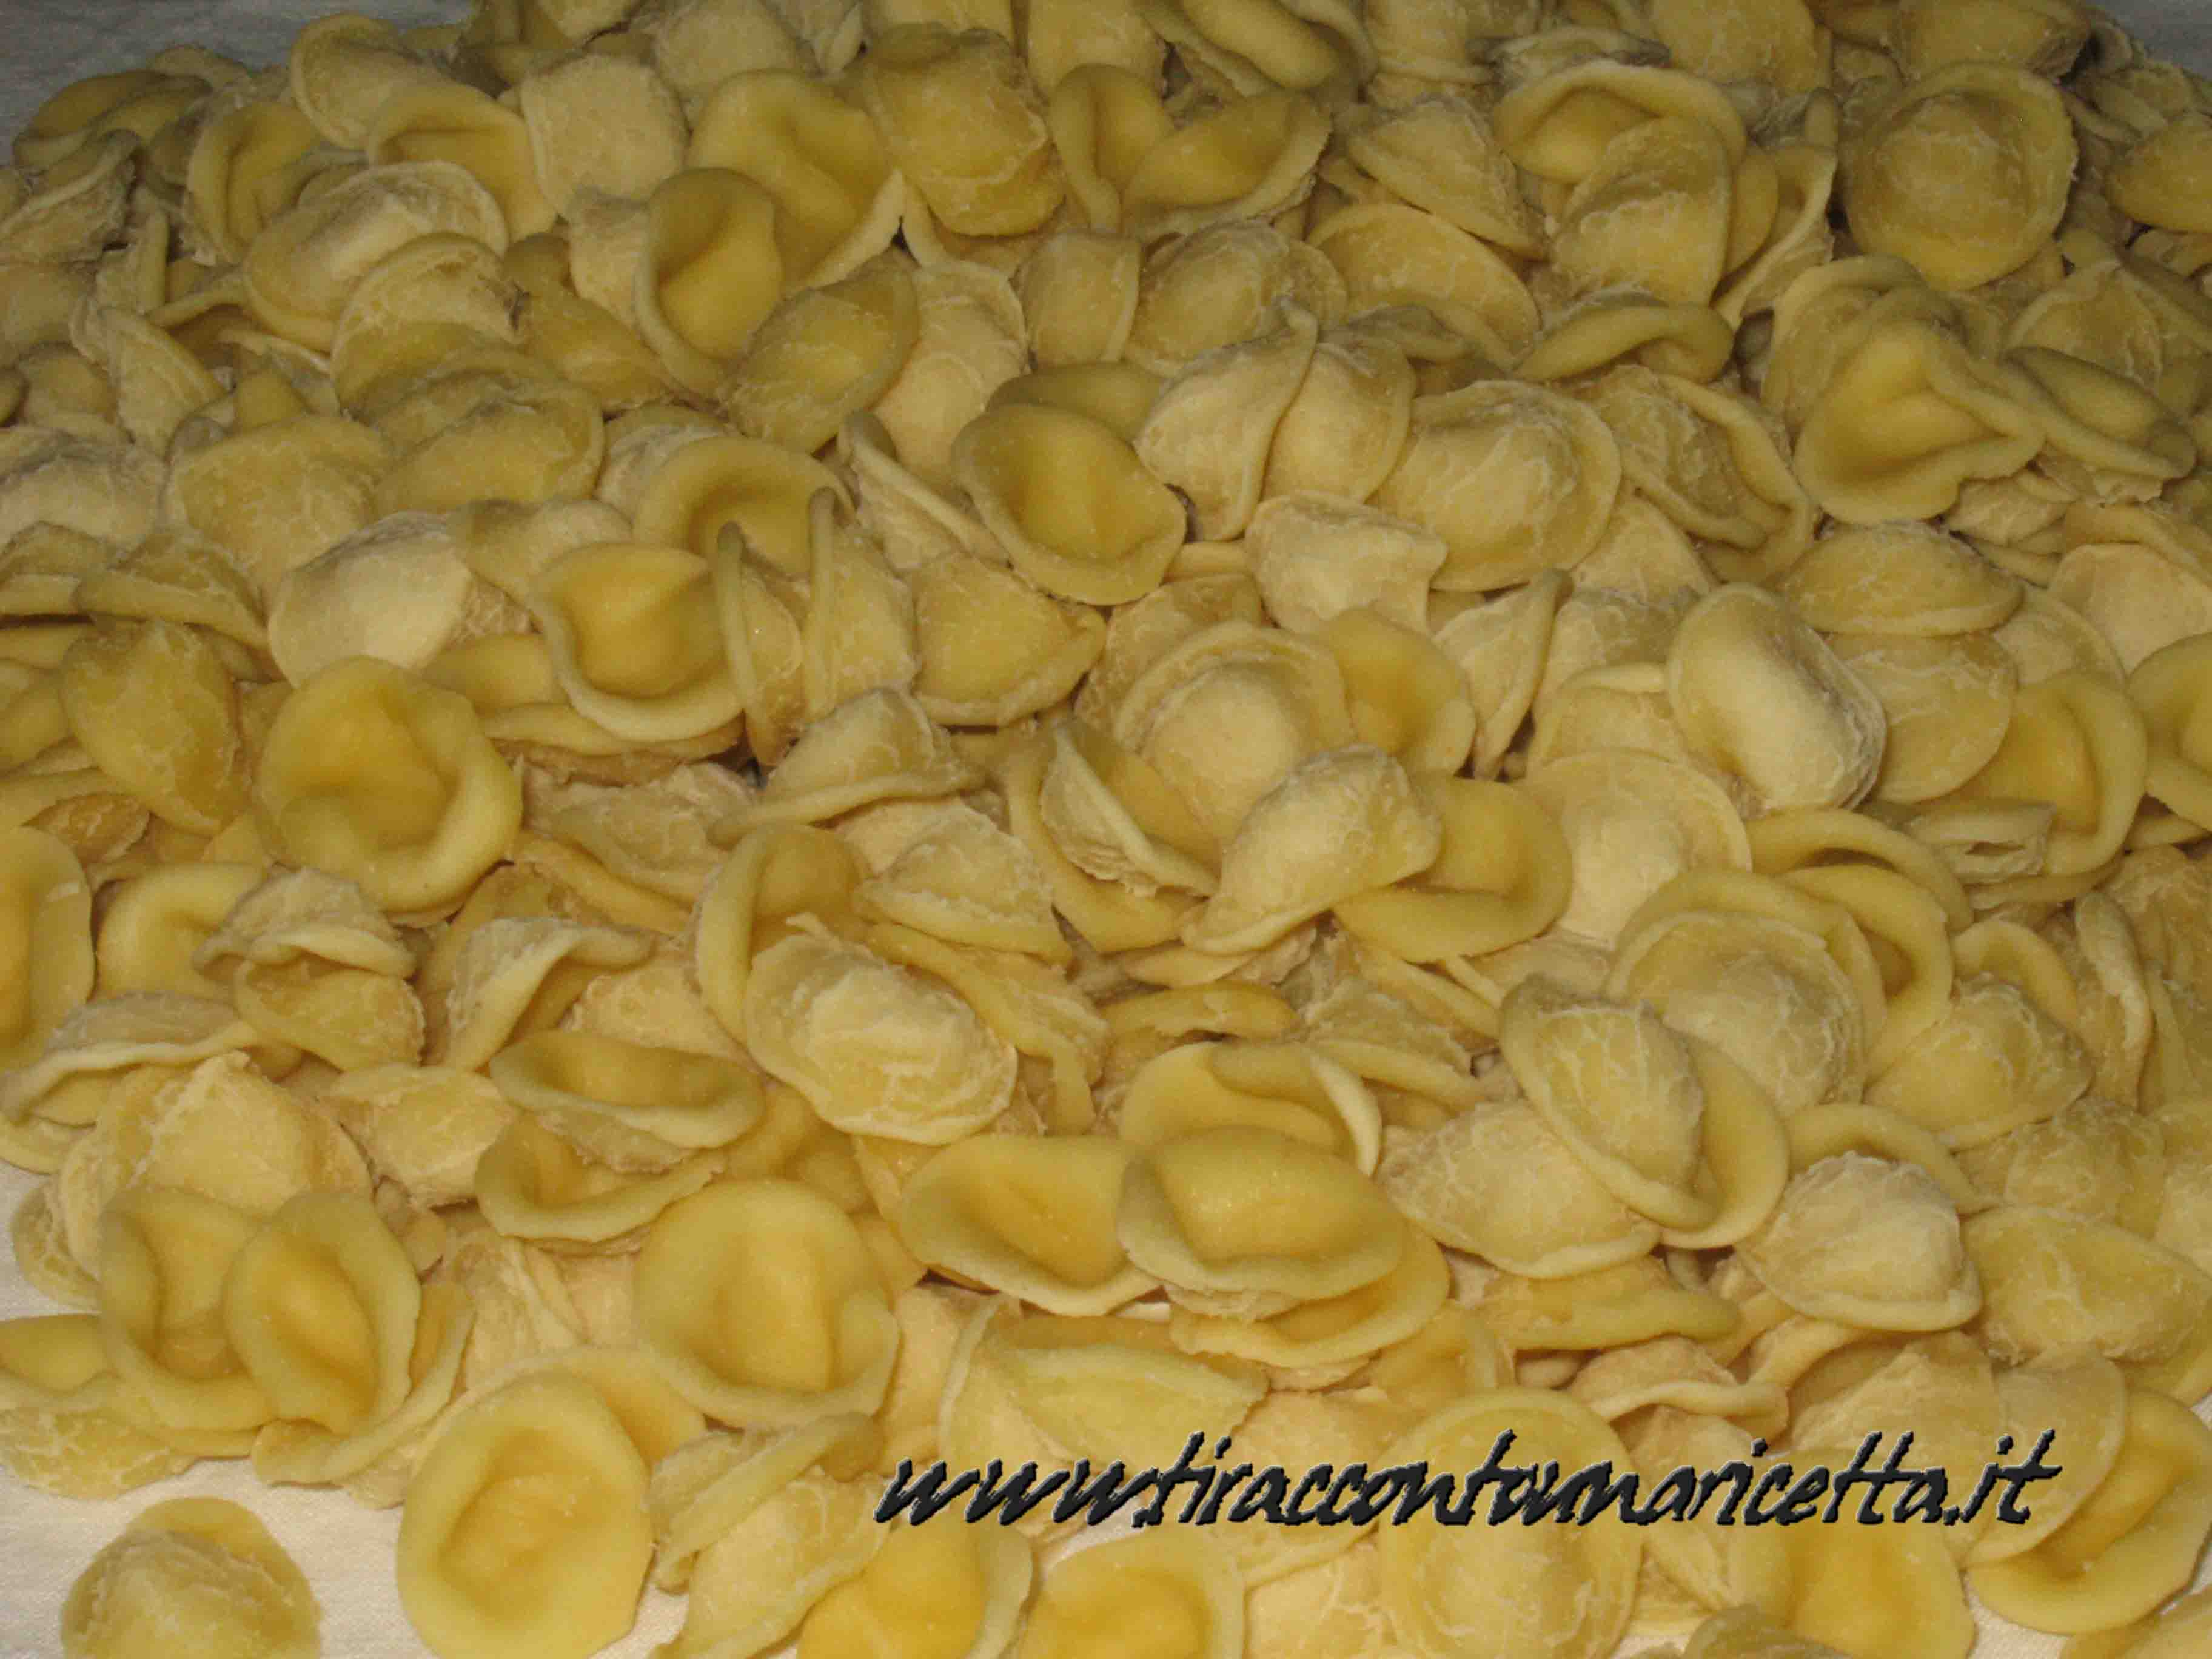 Orecchiette (little ears)  from Puglia